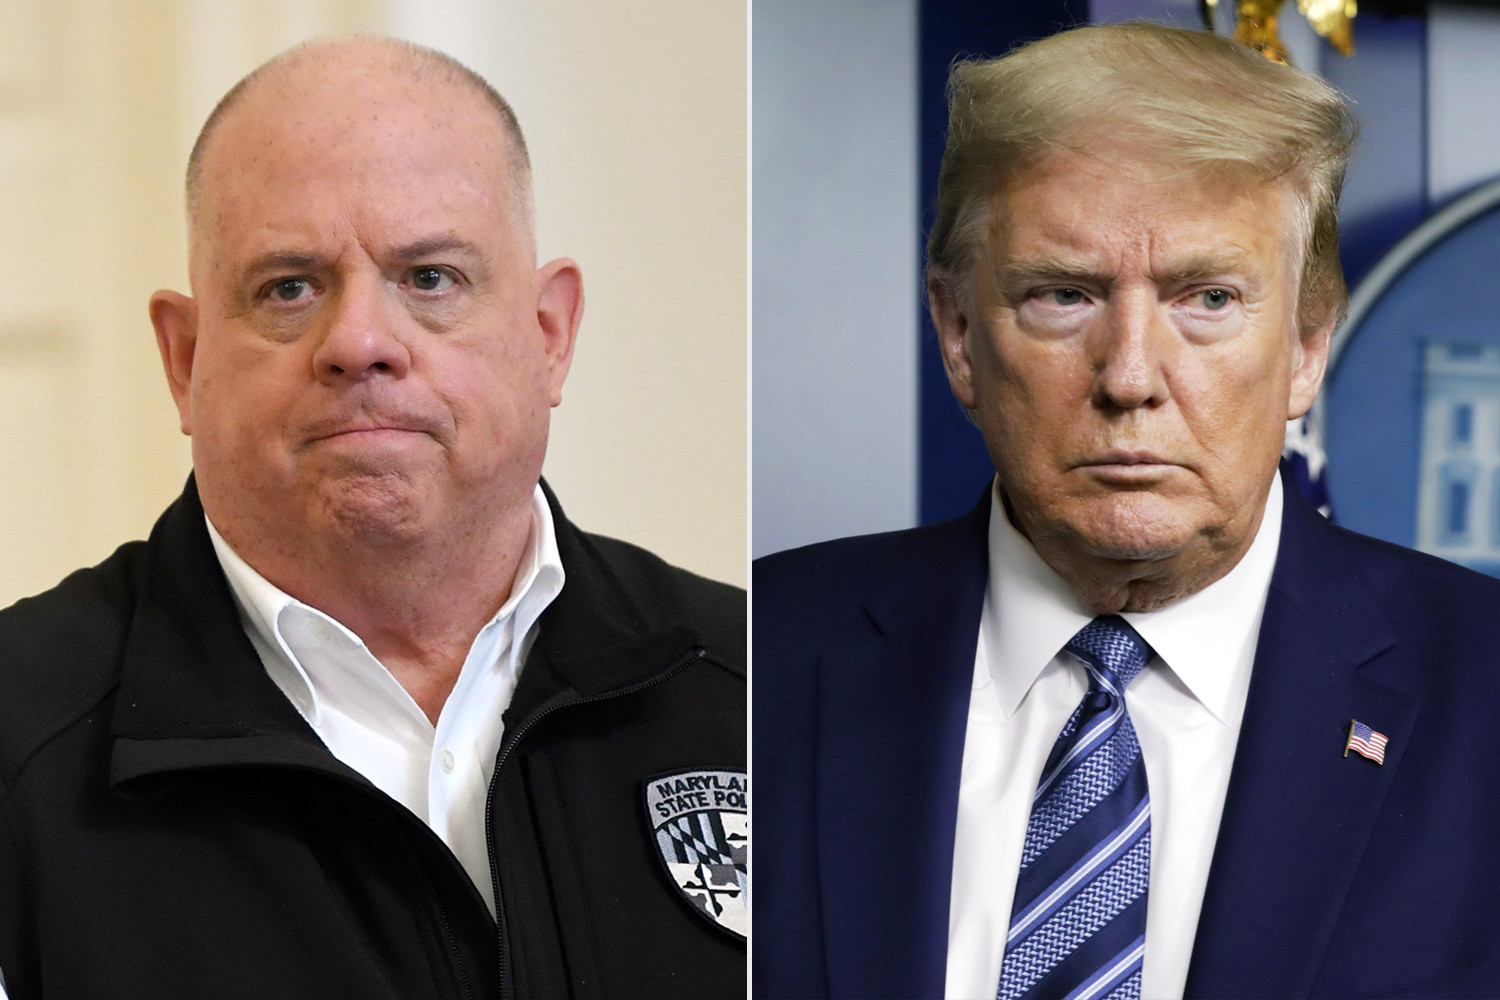 What Trump is doing is outrageous and an assault on our democracy - Maryland Governor Larry Hogan lindaikejisblog